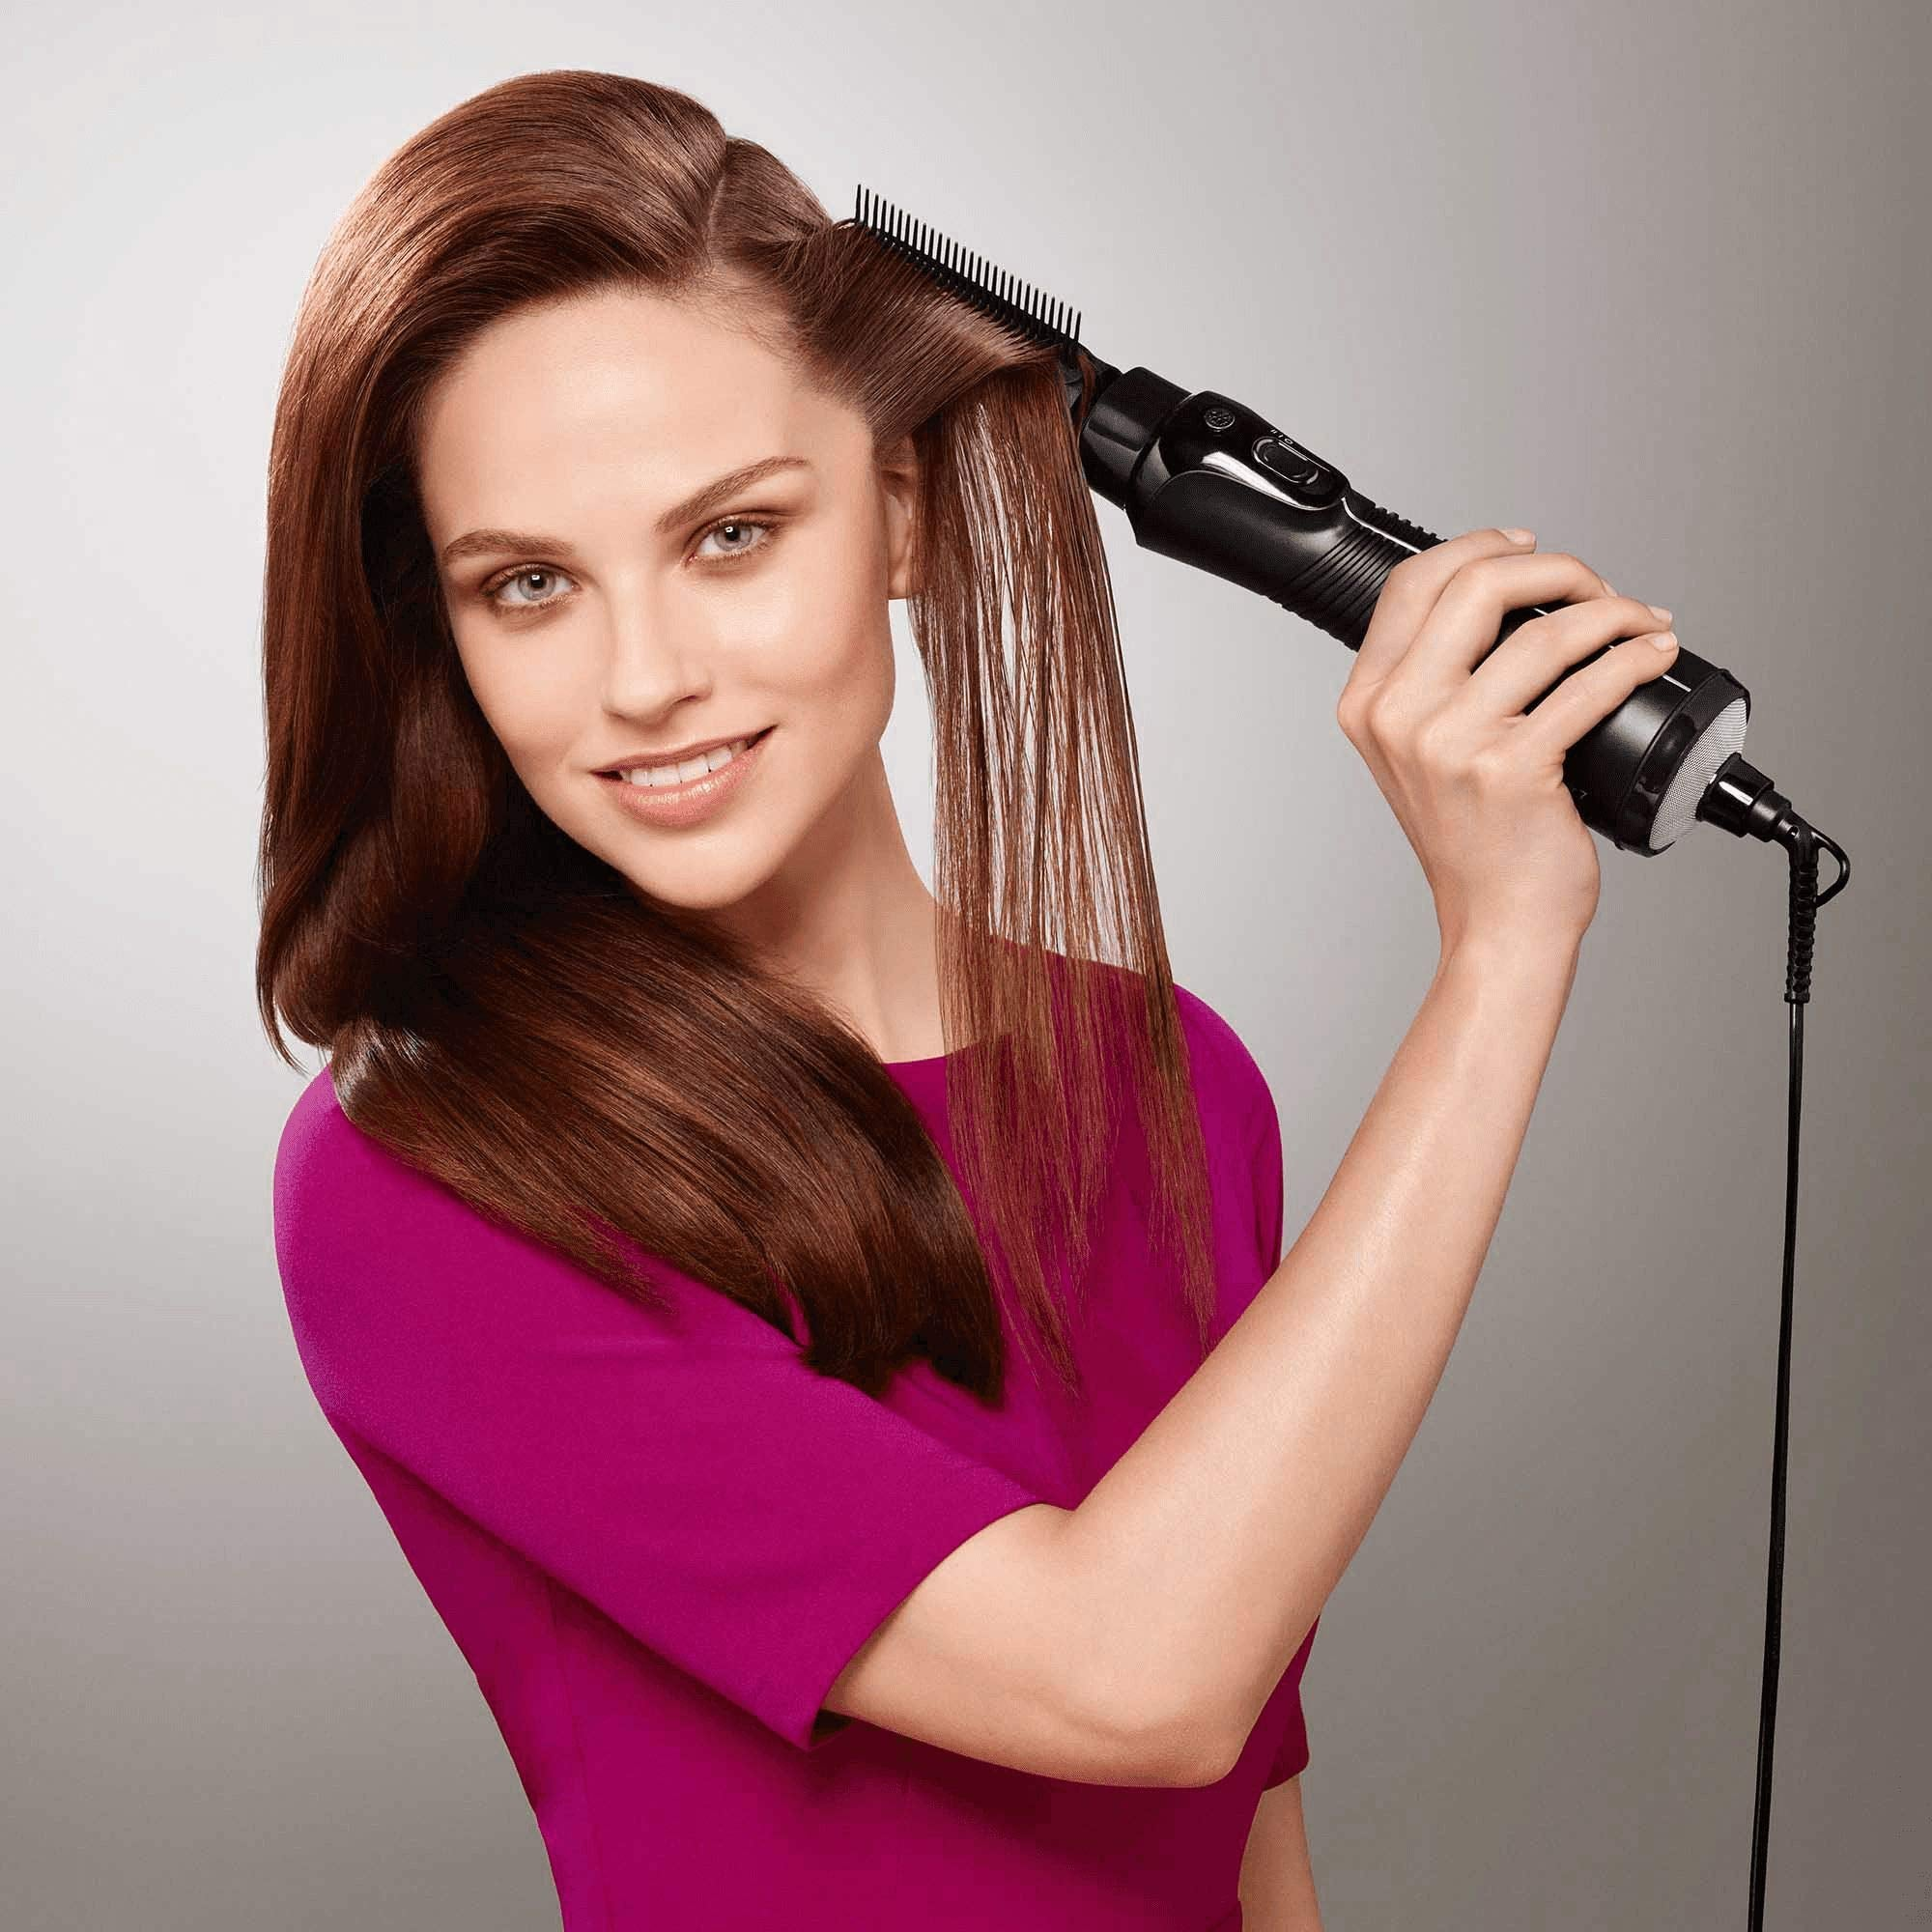 Braun Satin Hair 7 AS720 Hair Airstyler - Braun - Pazarska